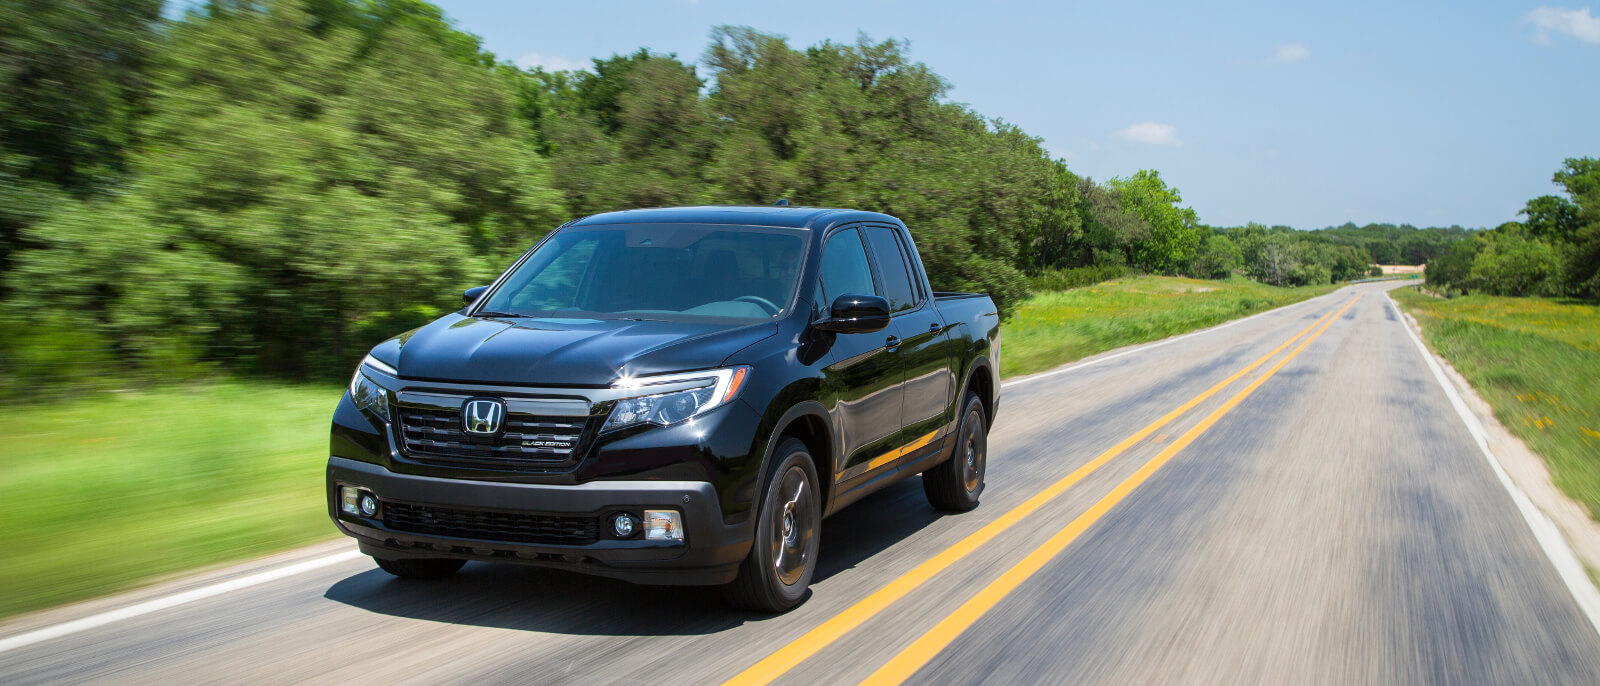 2016 Honda Pilot Towing Capacity U003eu003e David Hobbs Honda Introduces The 2017  Honda Ridgeline!